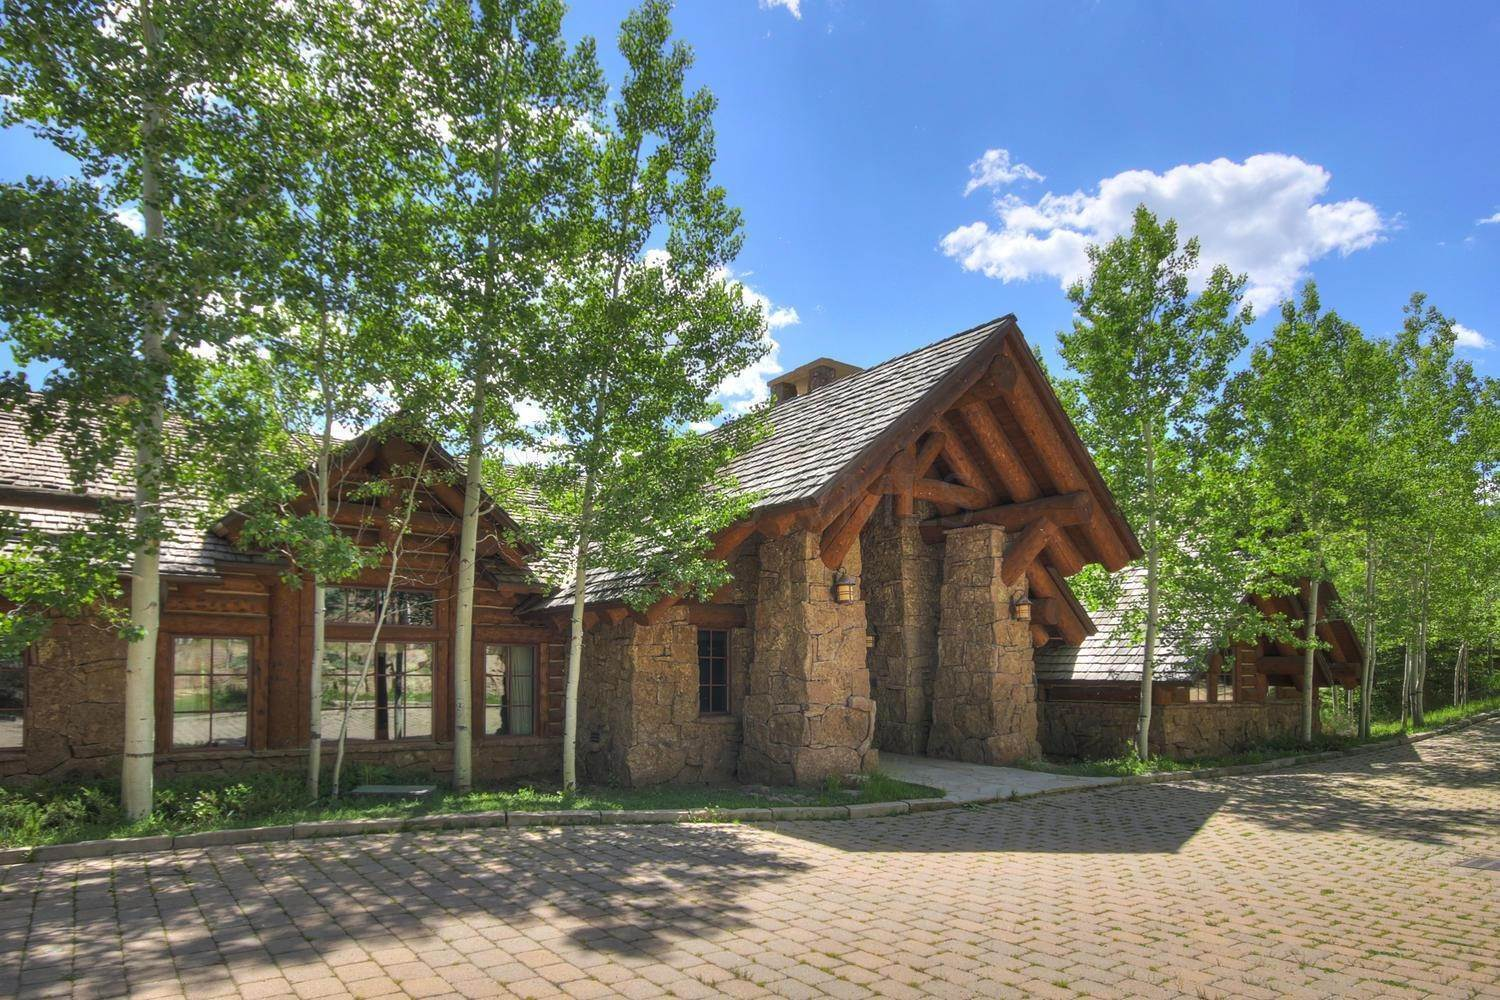 Single Family Homes for Active at 924 Bachelor Ridge Road Beaver Creek, Colorado 81620 United States